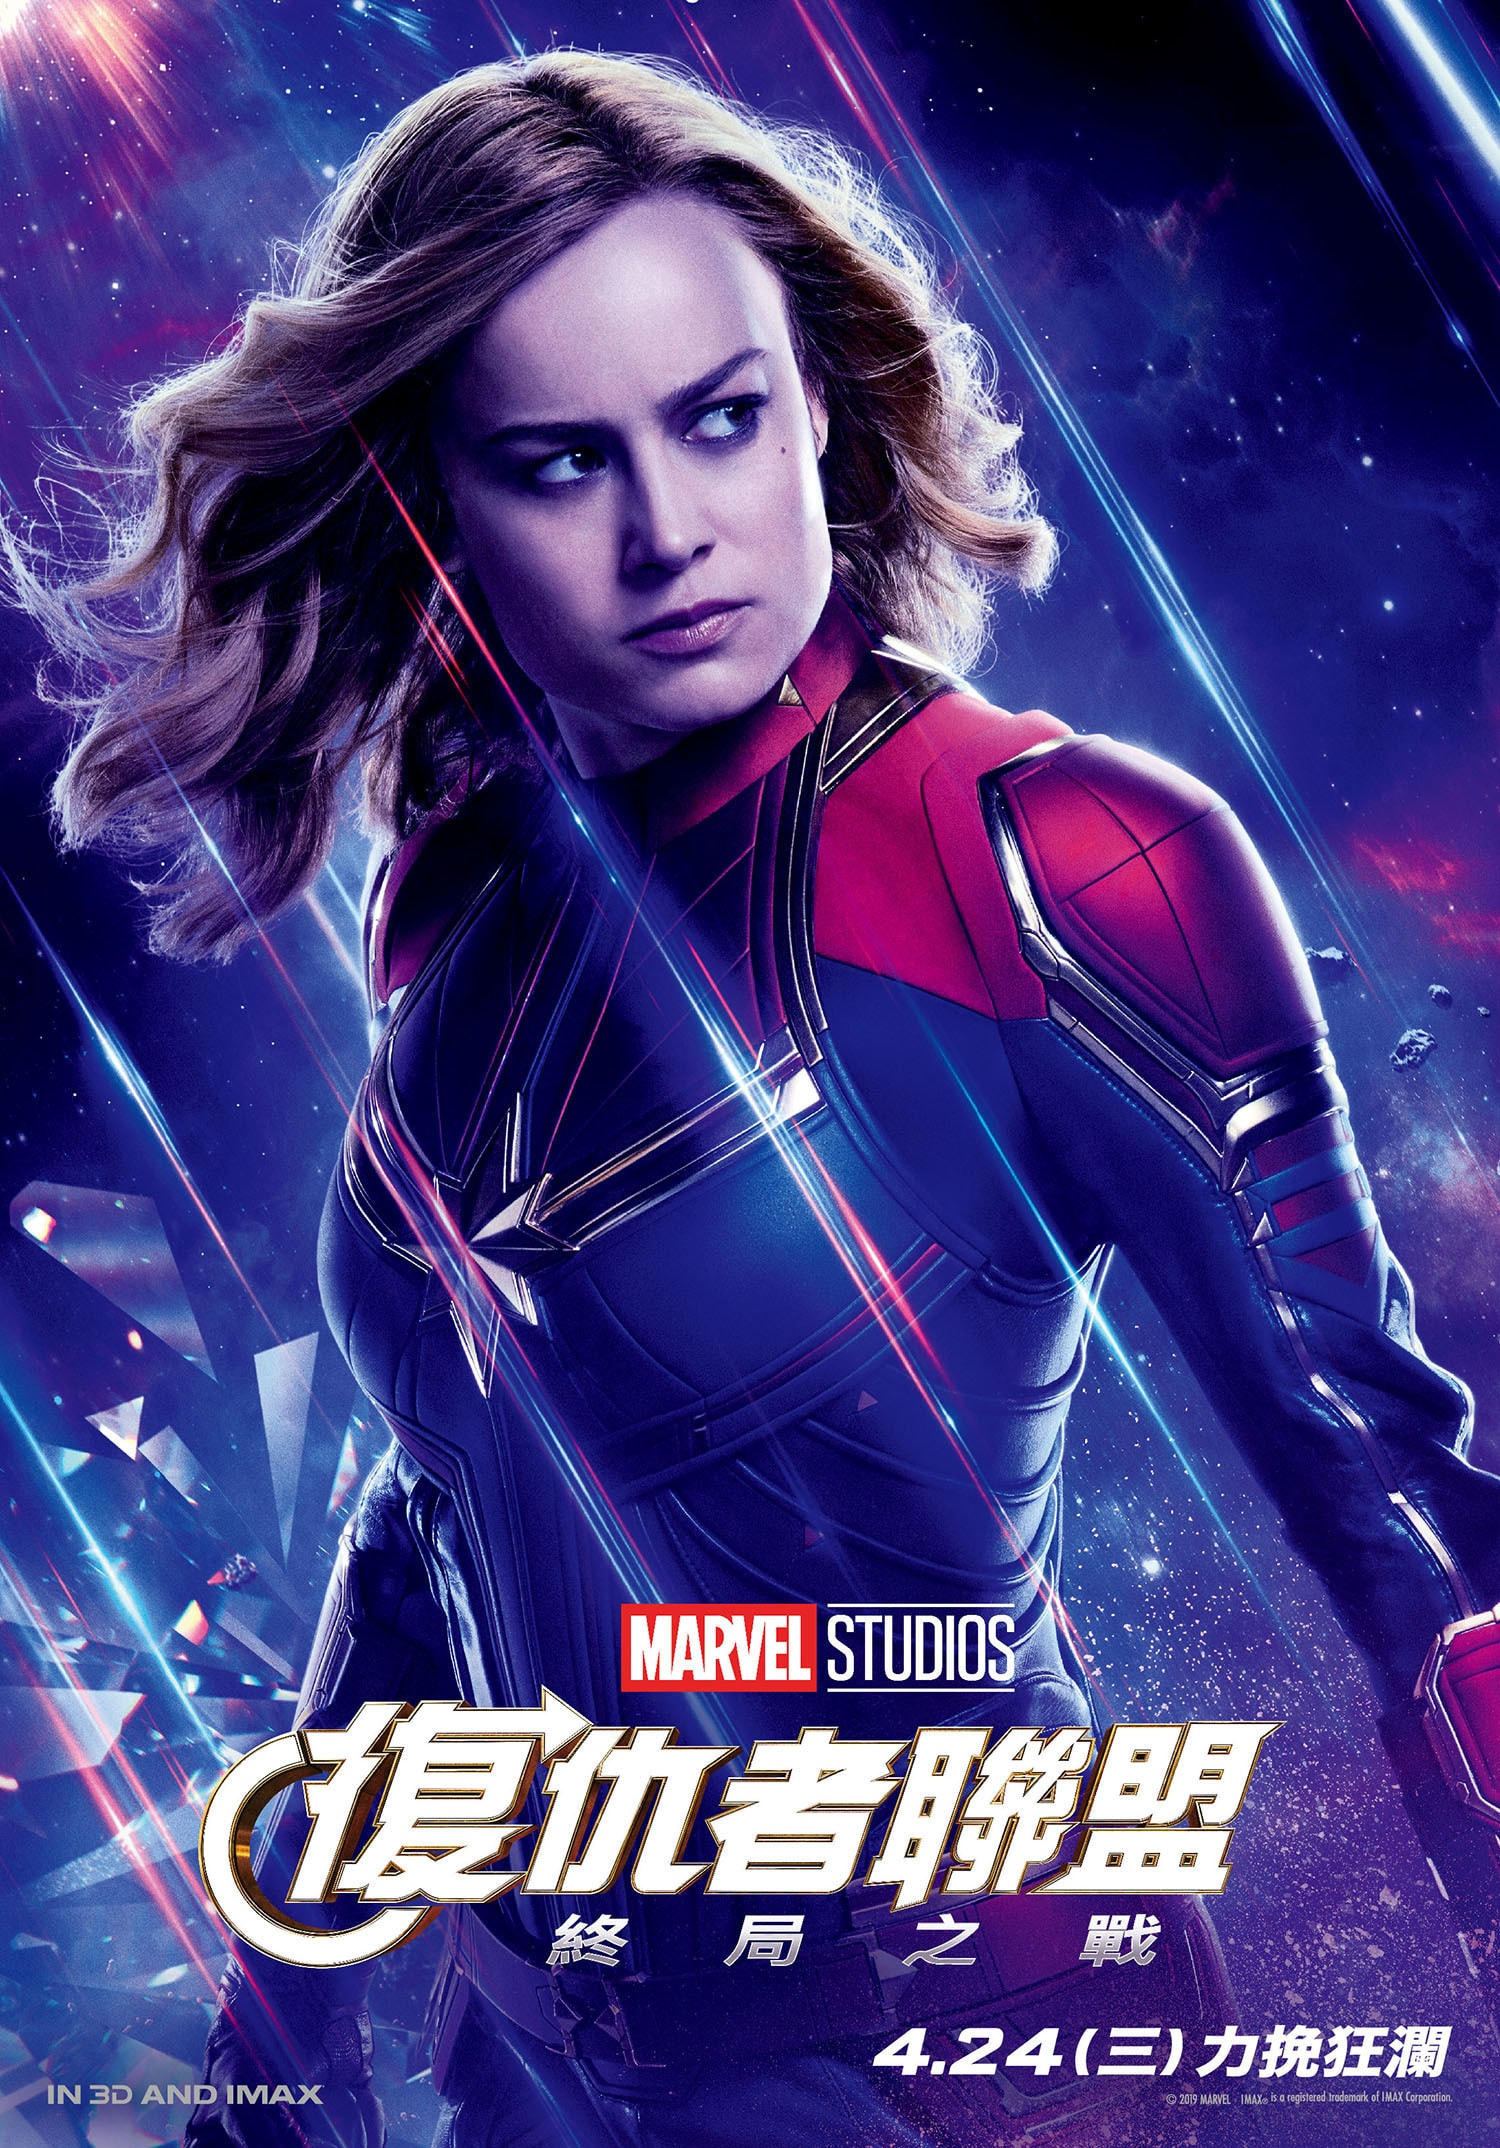 Avengers:End Game - Captain Marvel